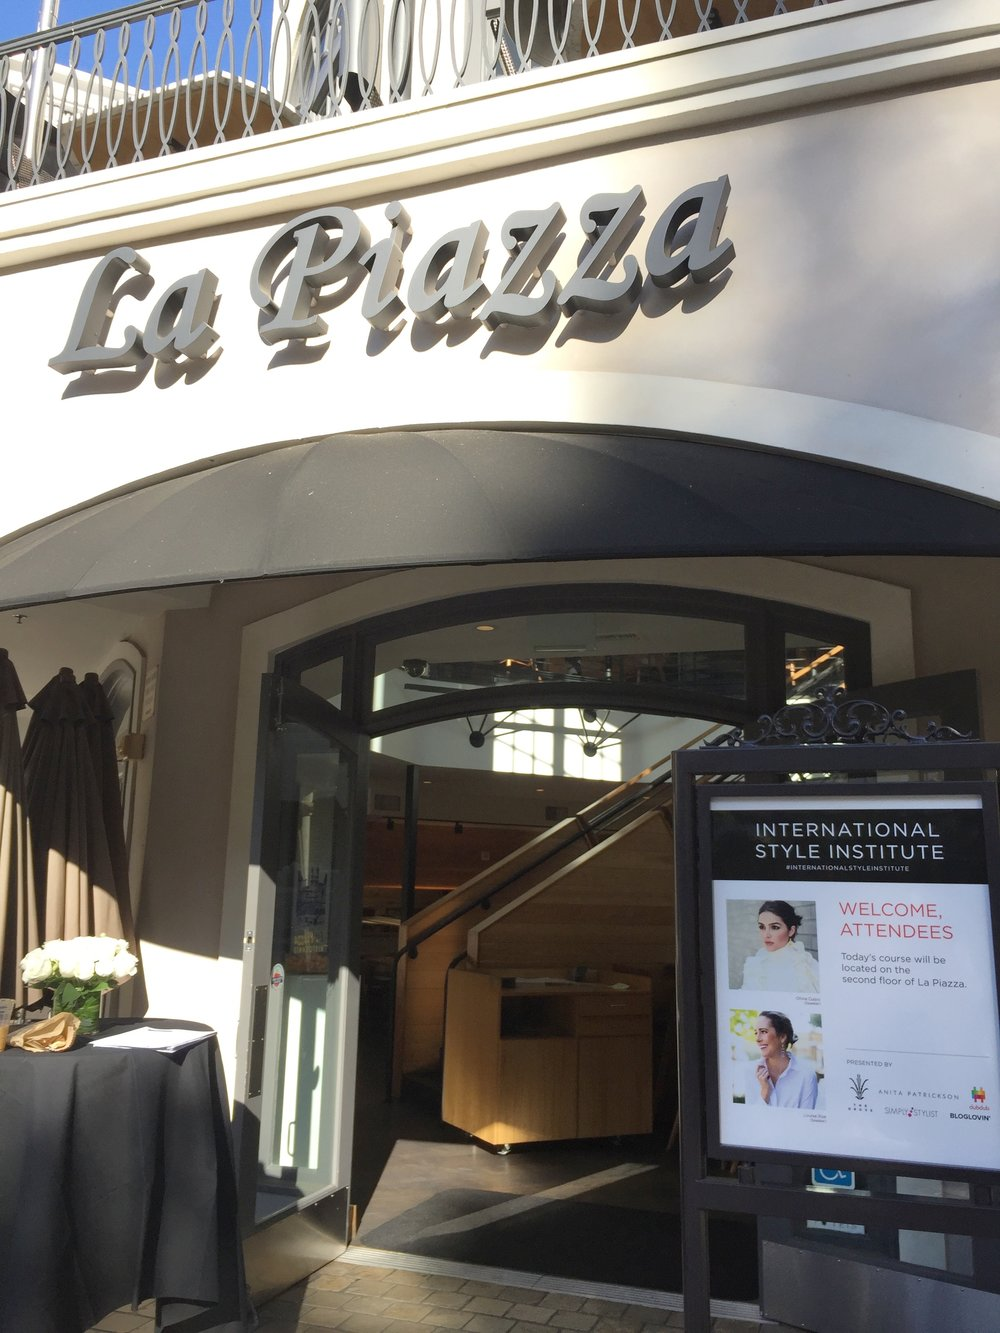 Location for Day 1 of the event: La Piazza @ The Grove